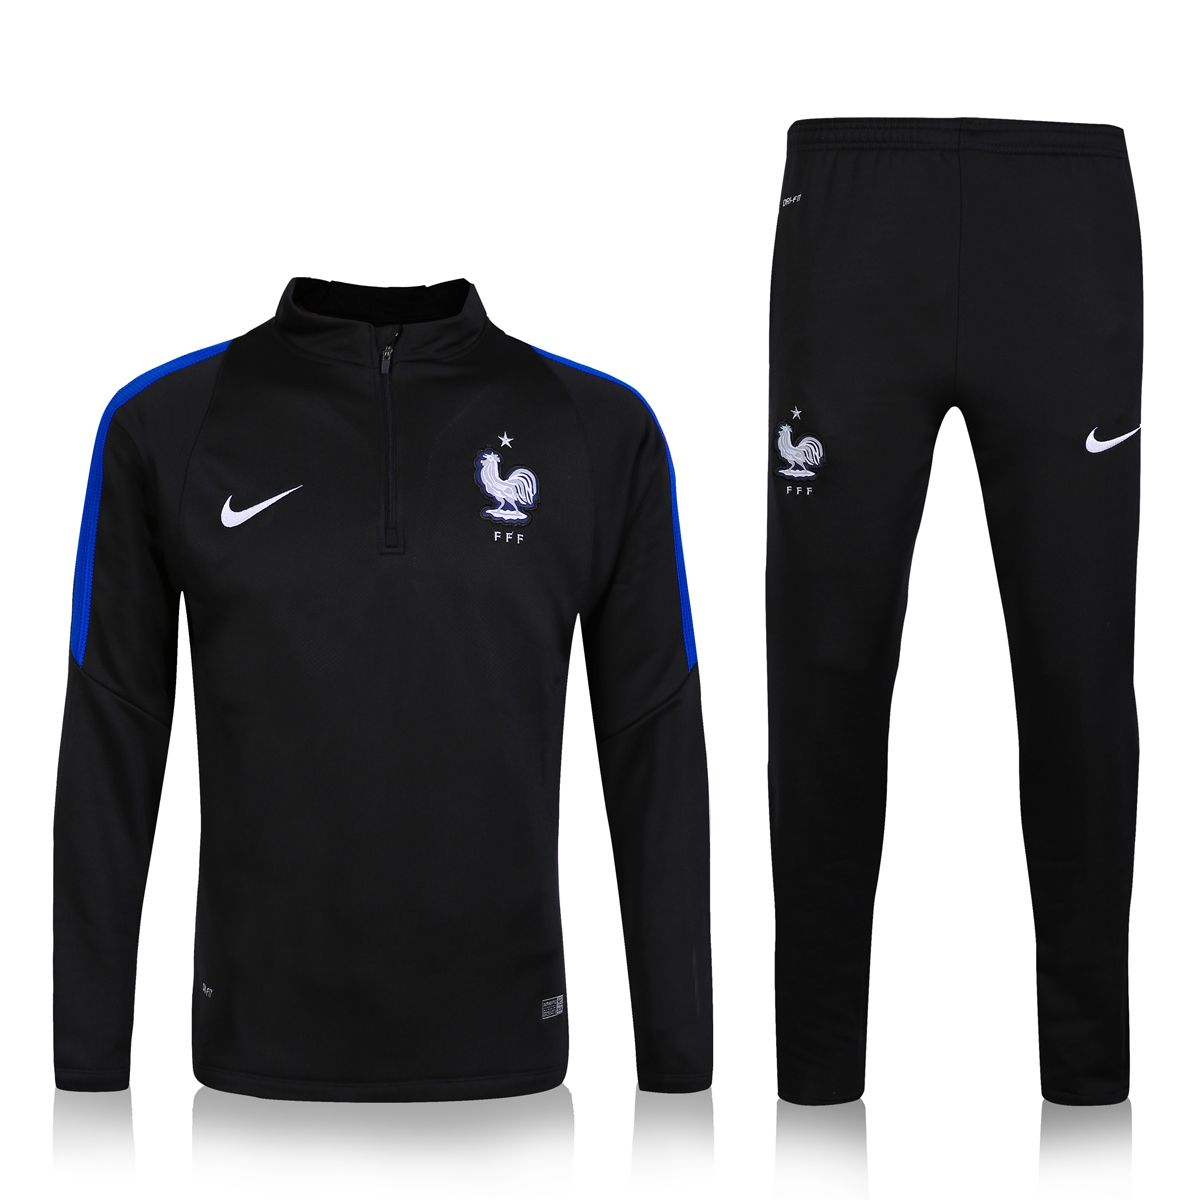 45 france long sleeve jersey track suit training jersey